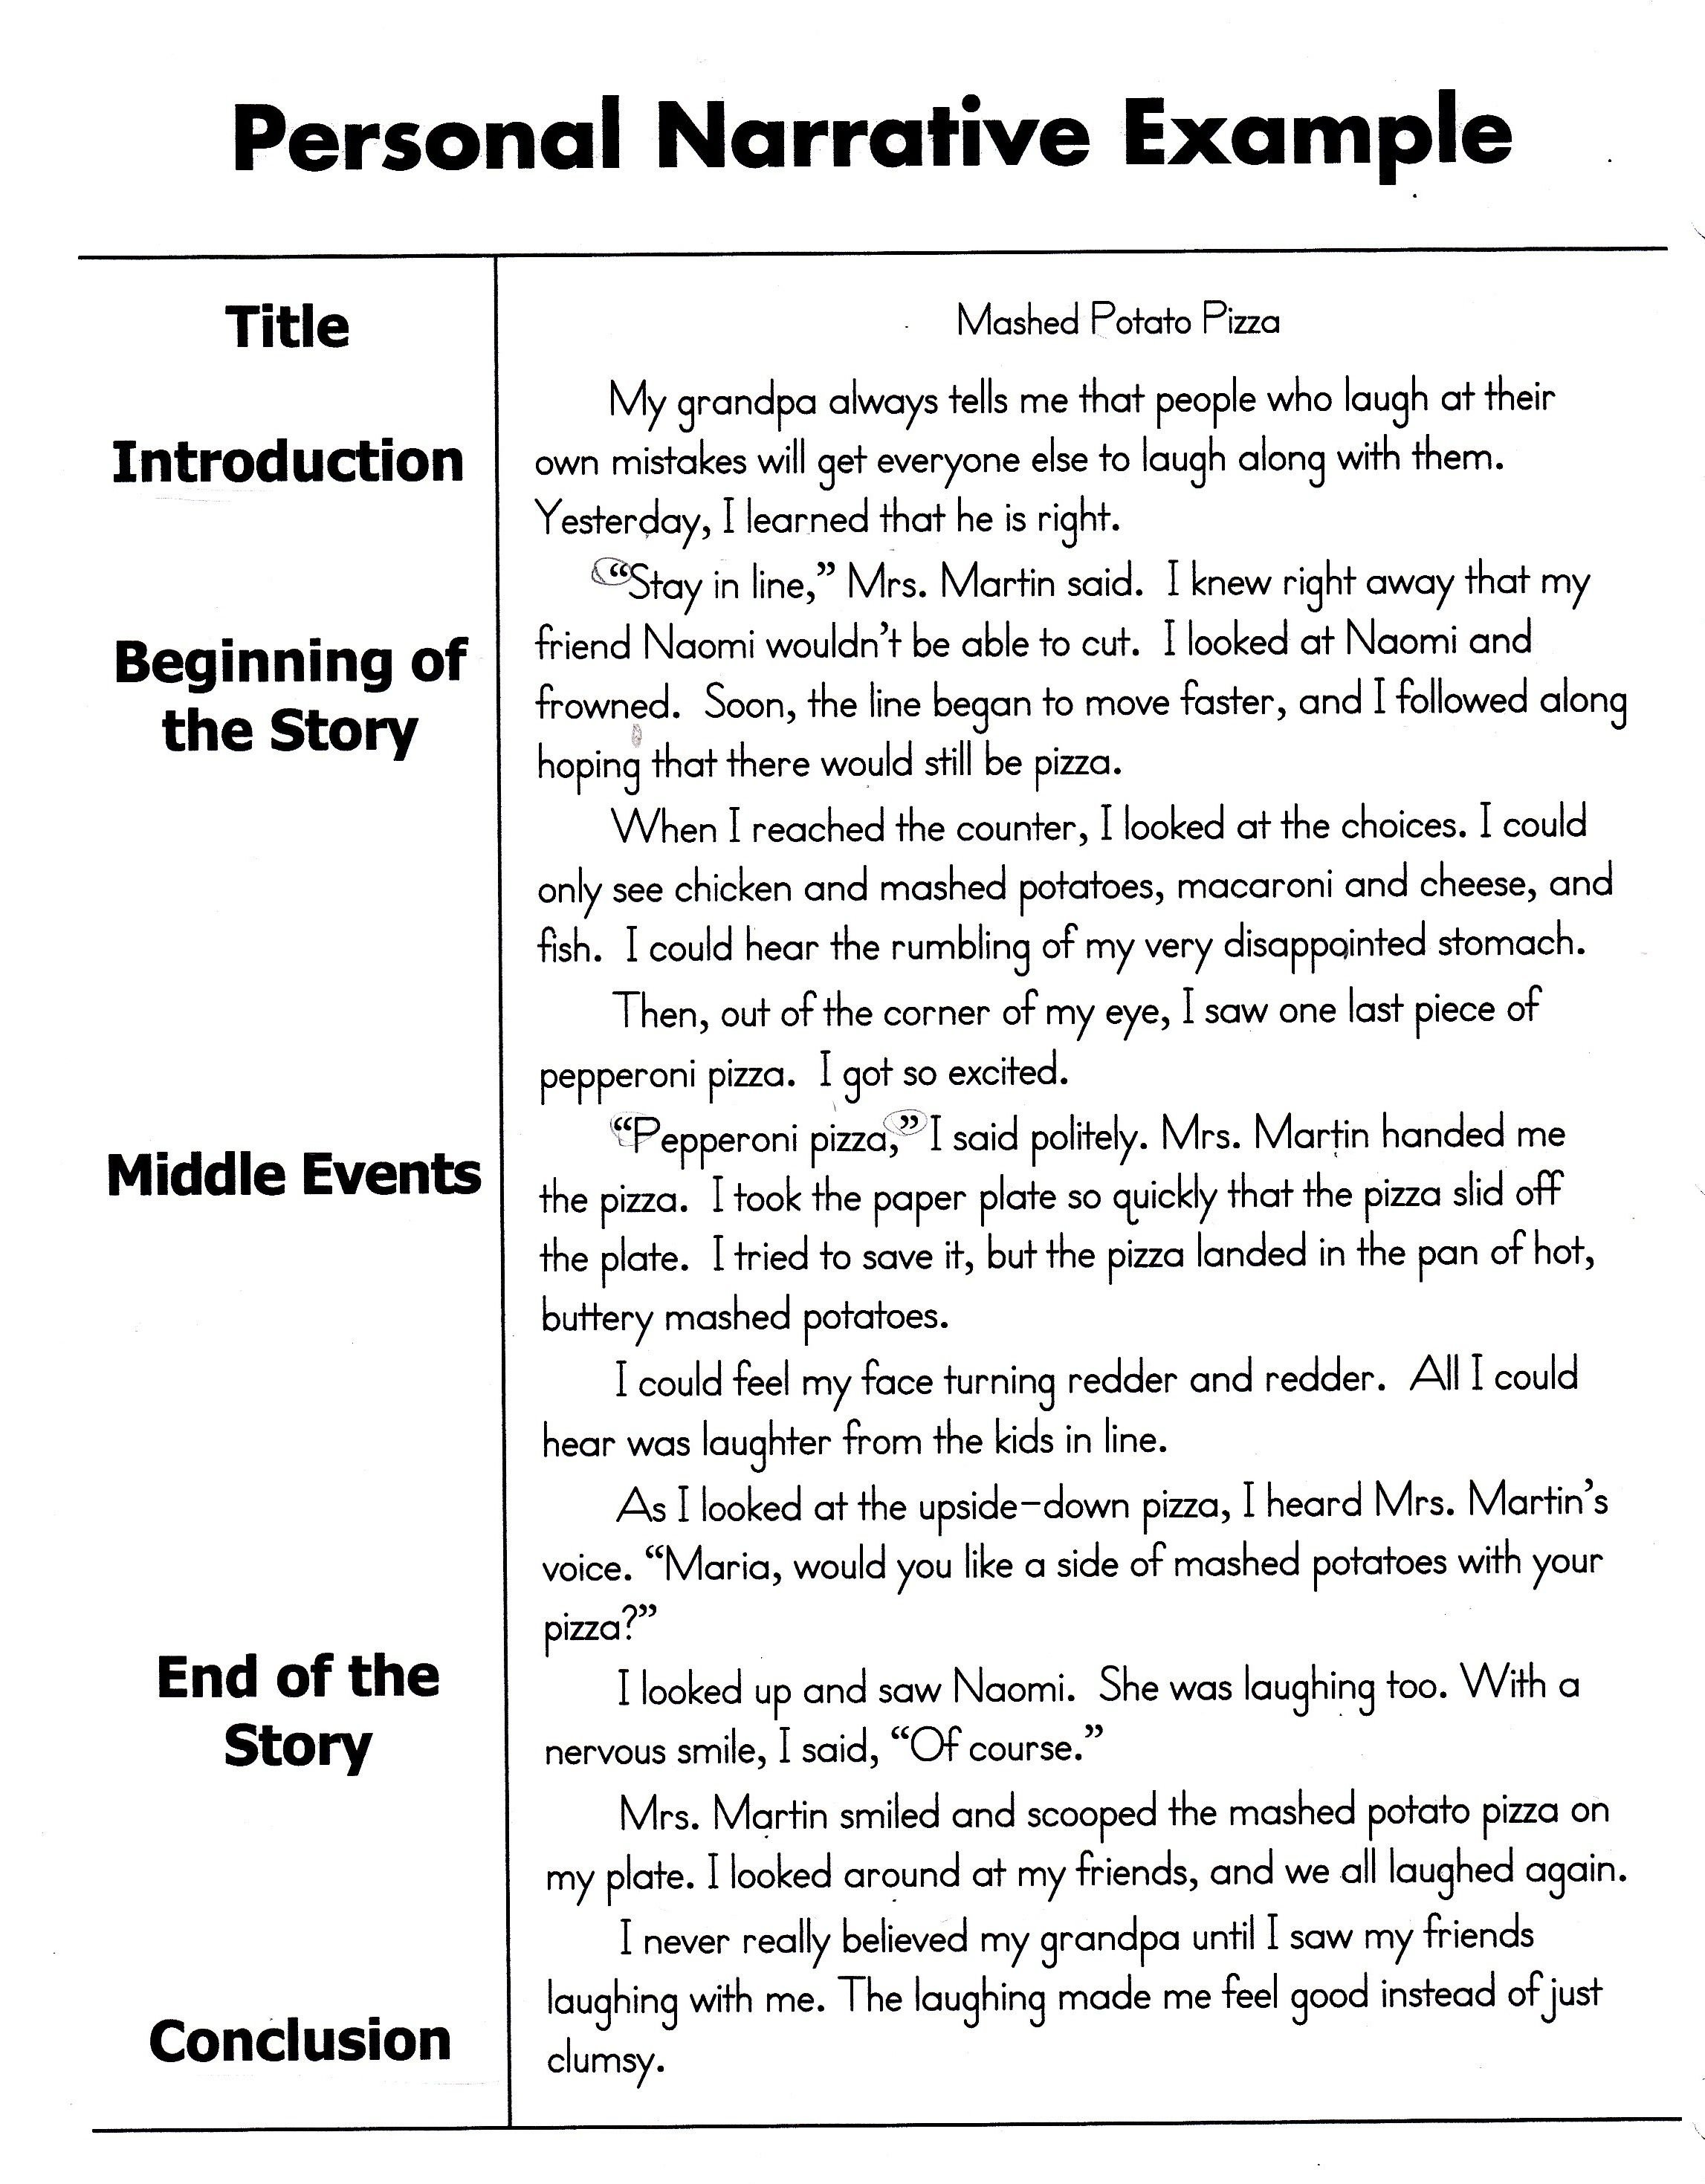 10 Stylish Ideas For A Narrative Essay how to write a personal narrative essay for 4th 5th grade oc 2020